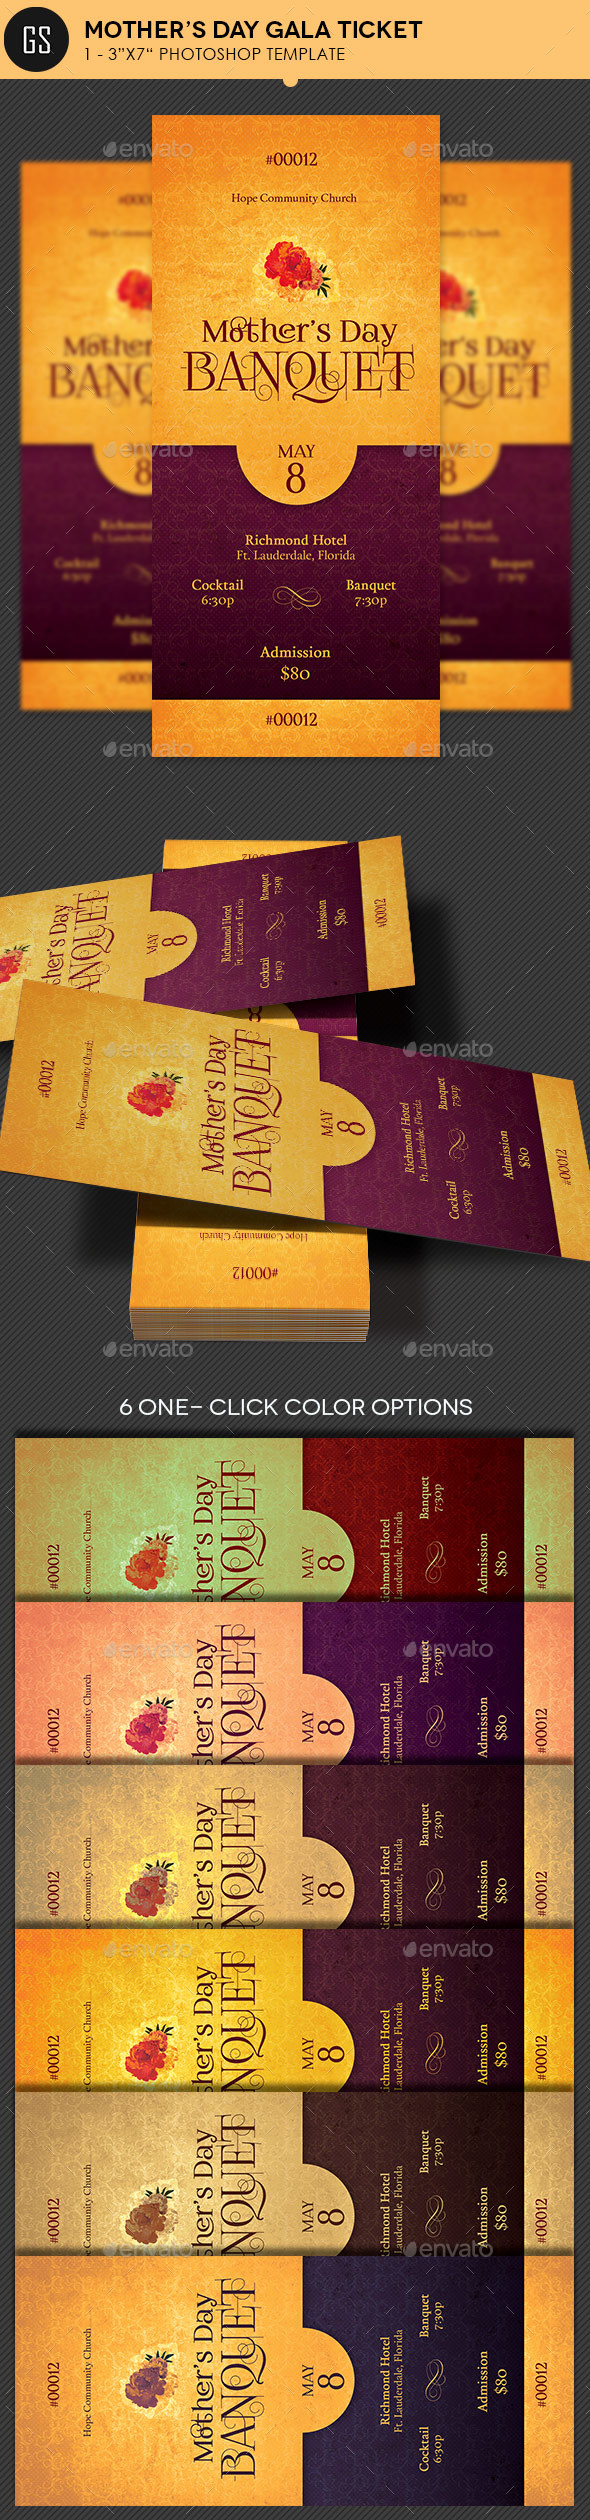 elegant and ticket random print templates from graphicriver